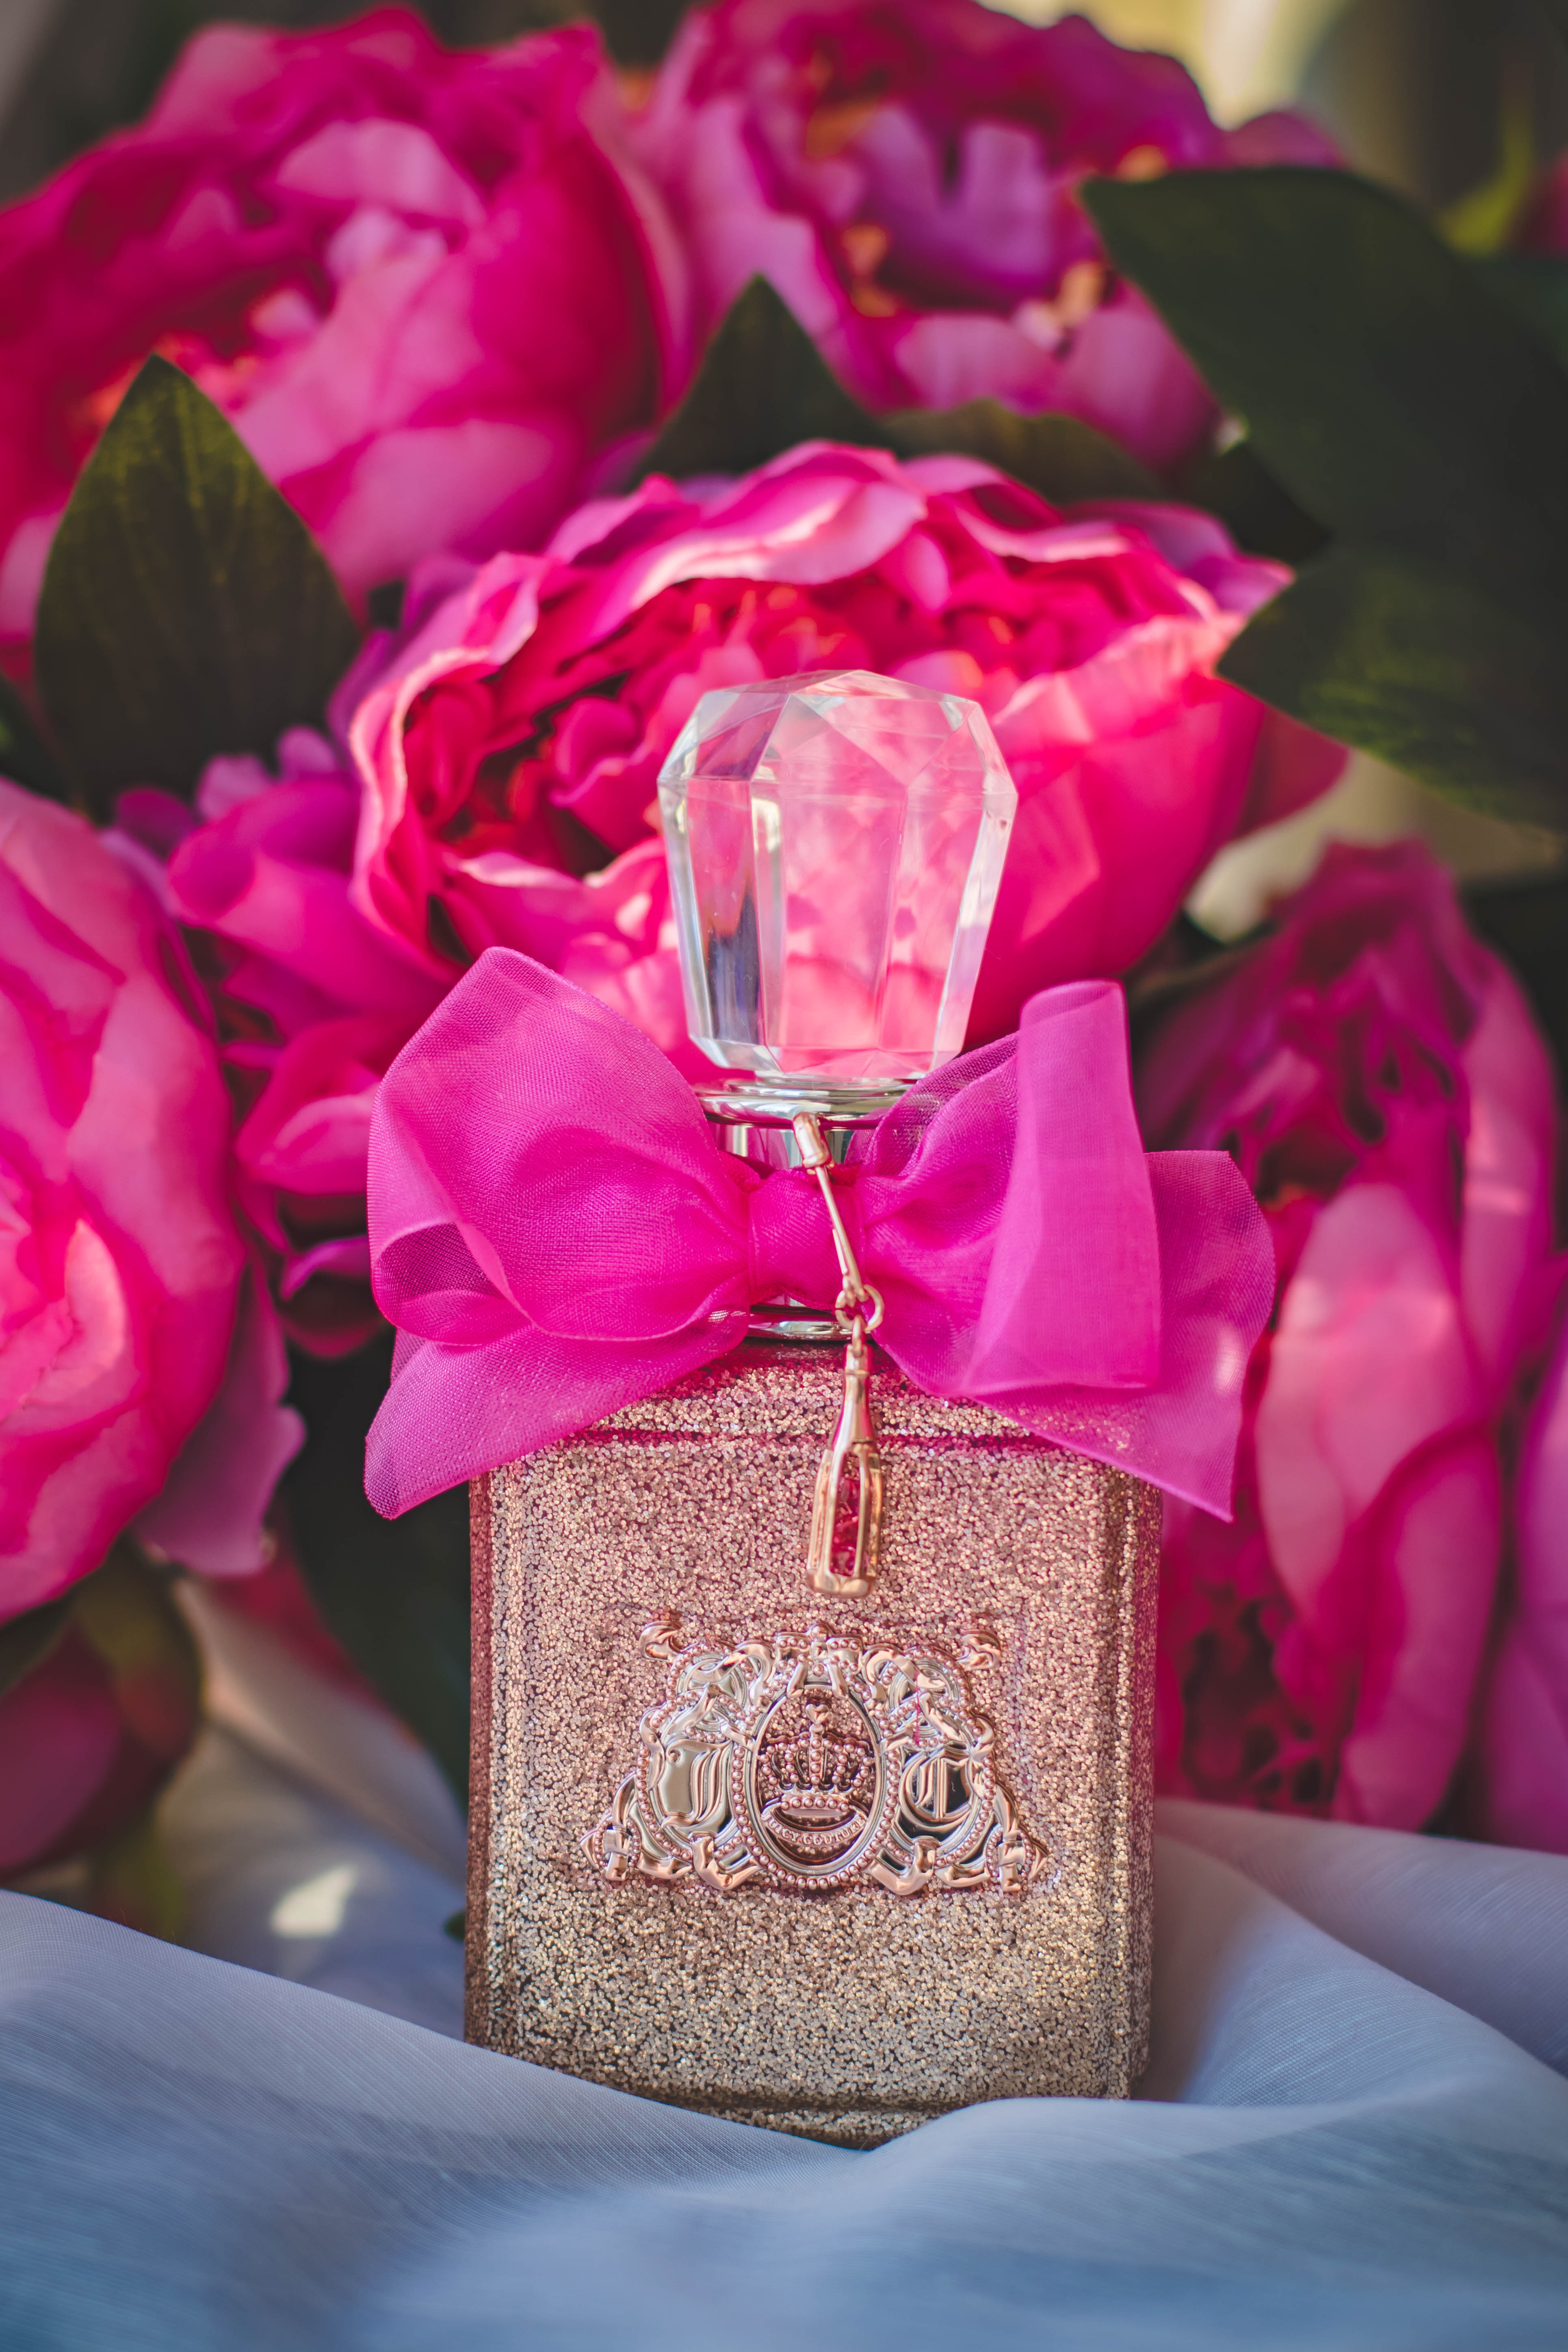 Gray and Pink Labeled Fragrance Bottle, Anniversary, Fragrance, Scent, Romantic, HQ Photo